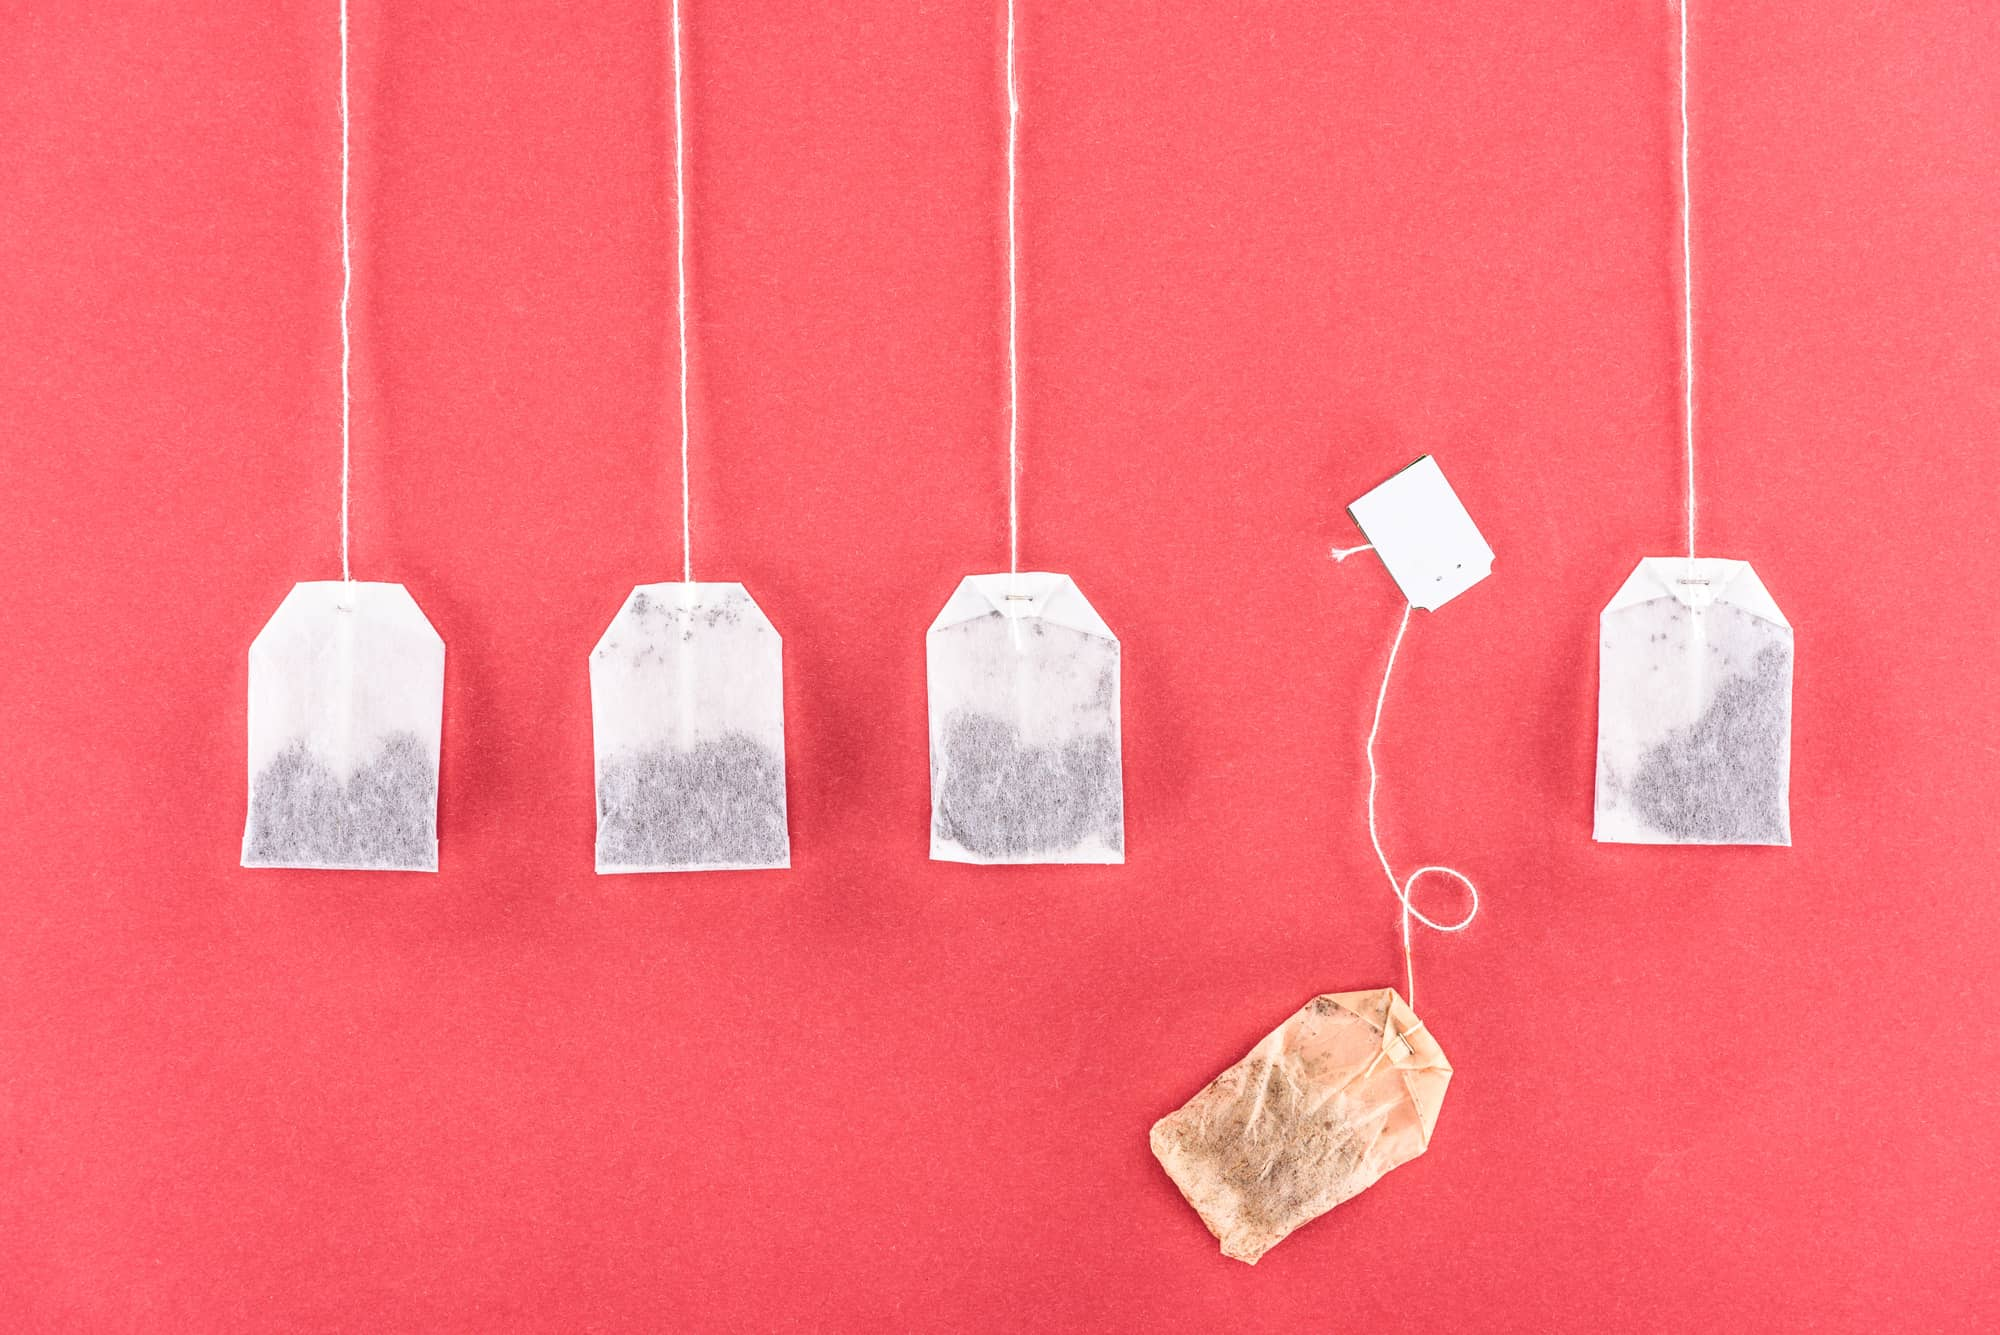 tea bags against a pink wall